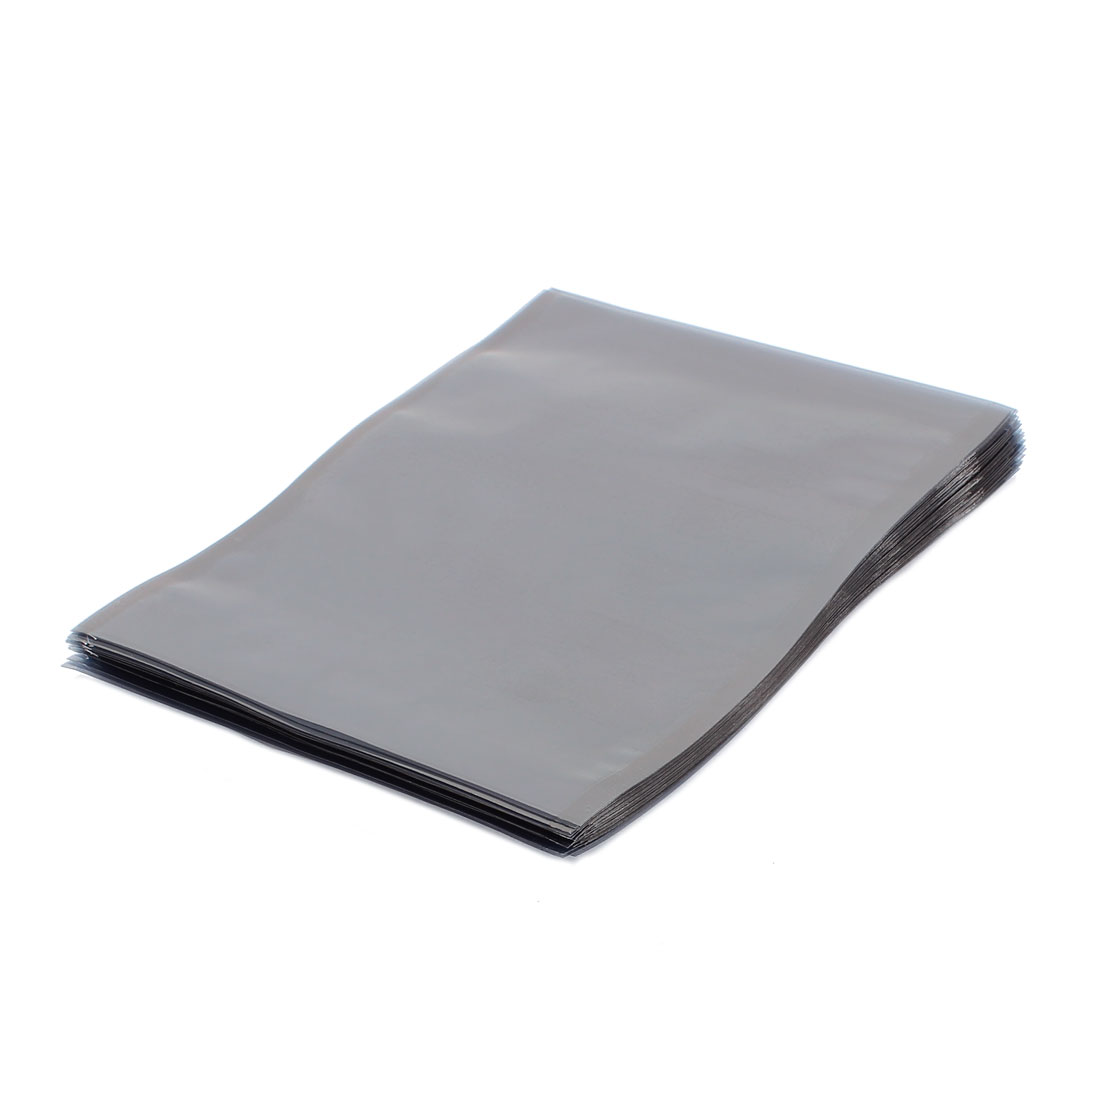 50 Pcs 130mm x 170mm Silver Tone Flat Open Top Anti Static Bag For Electronics